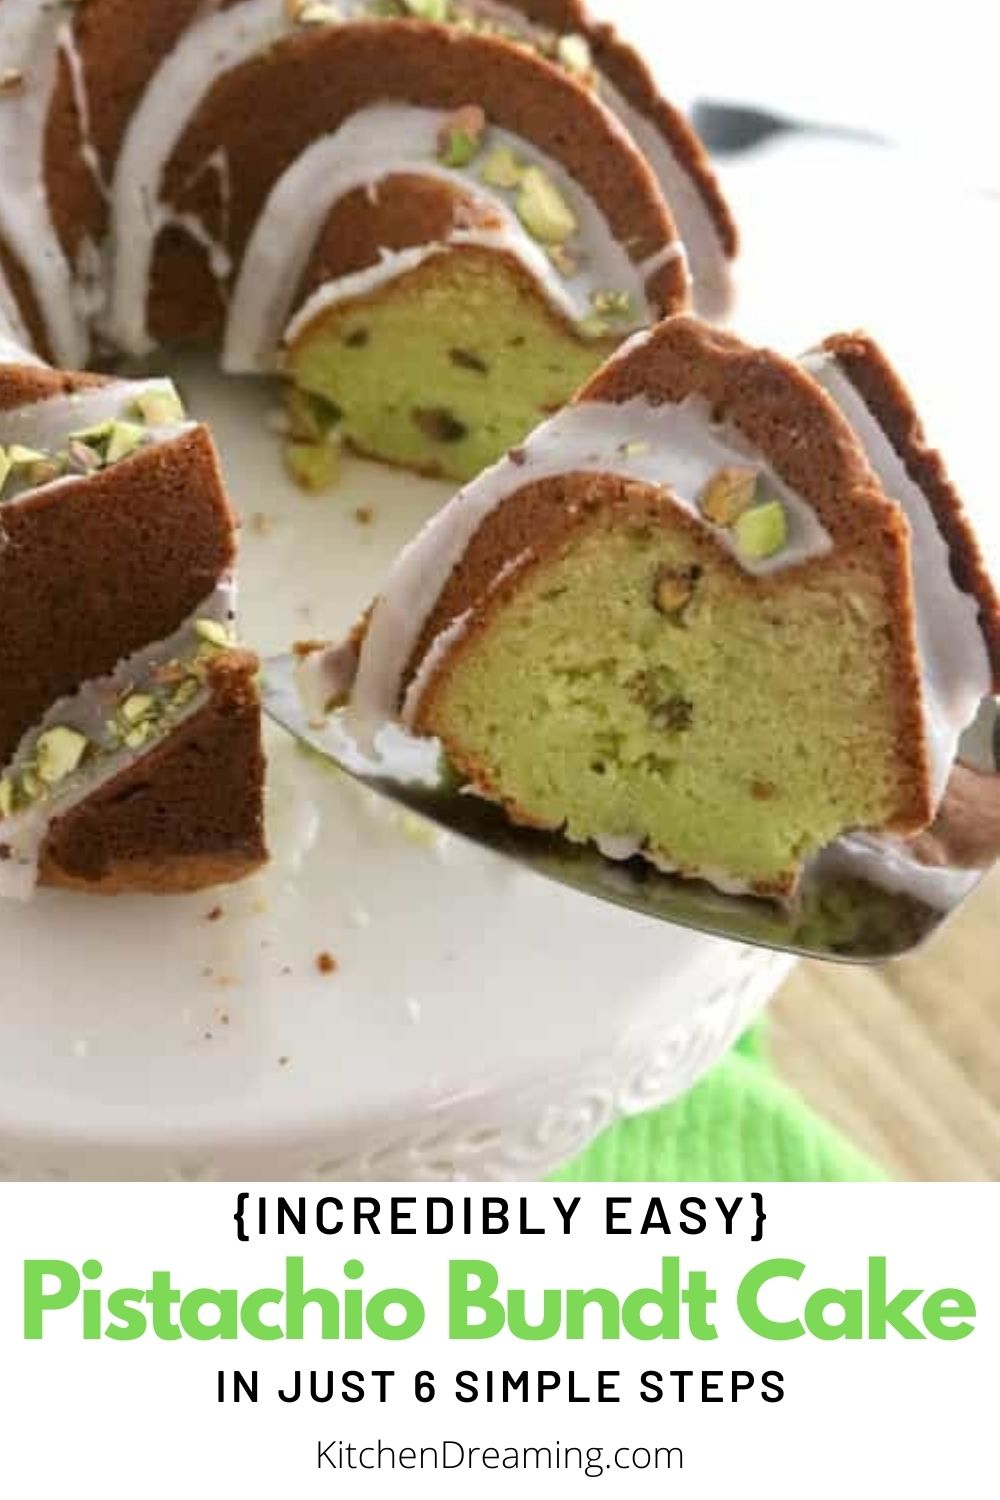 A pinnable pinterest image for pistachio bundt cake which shows a slice of the tender and moist cake being removed from the cake on a metal cake serving spatula.